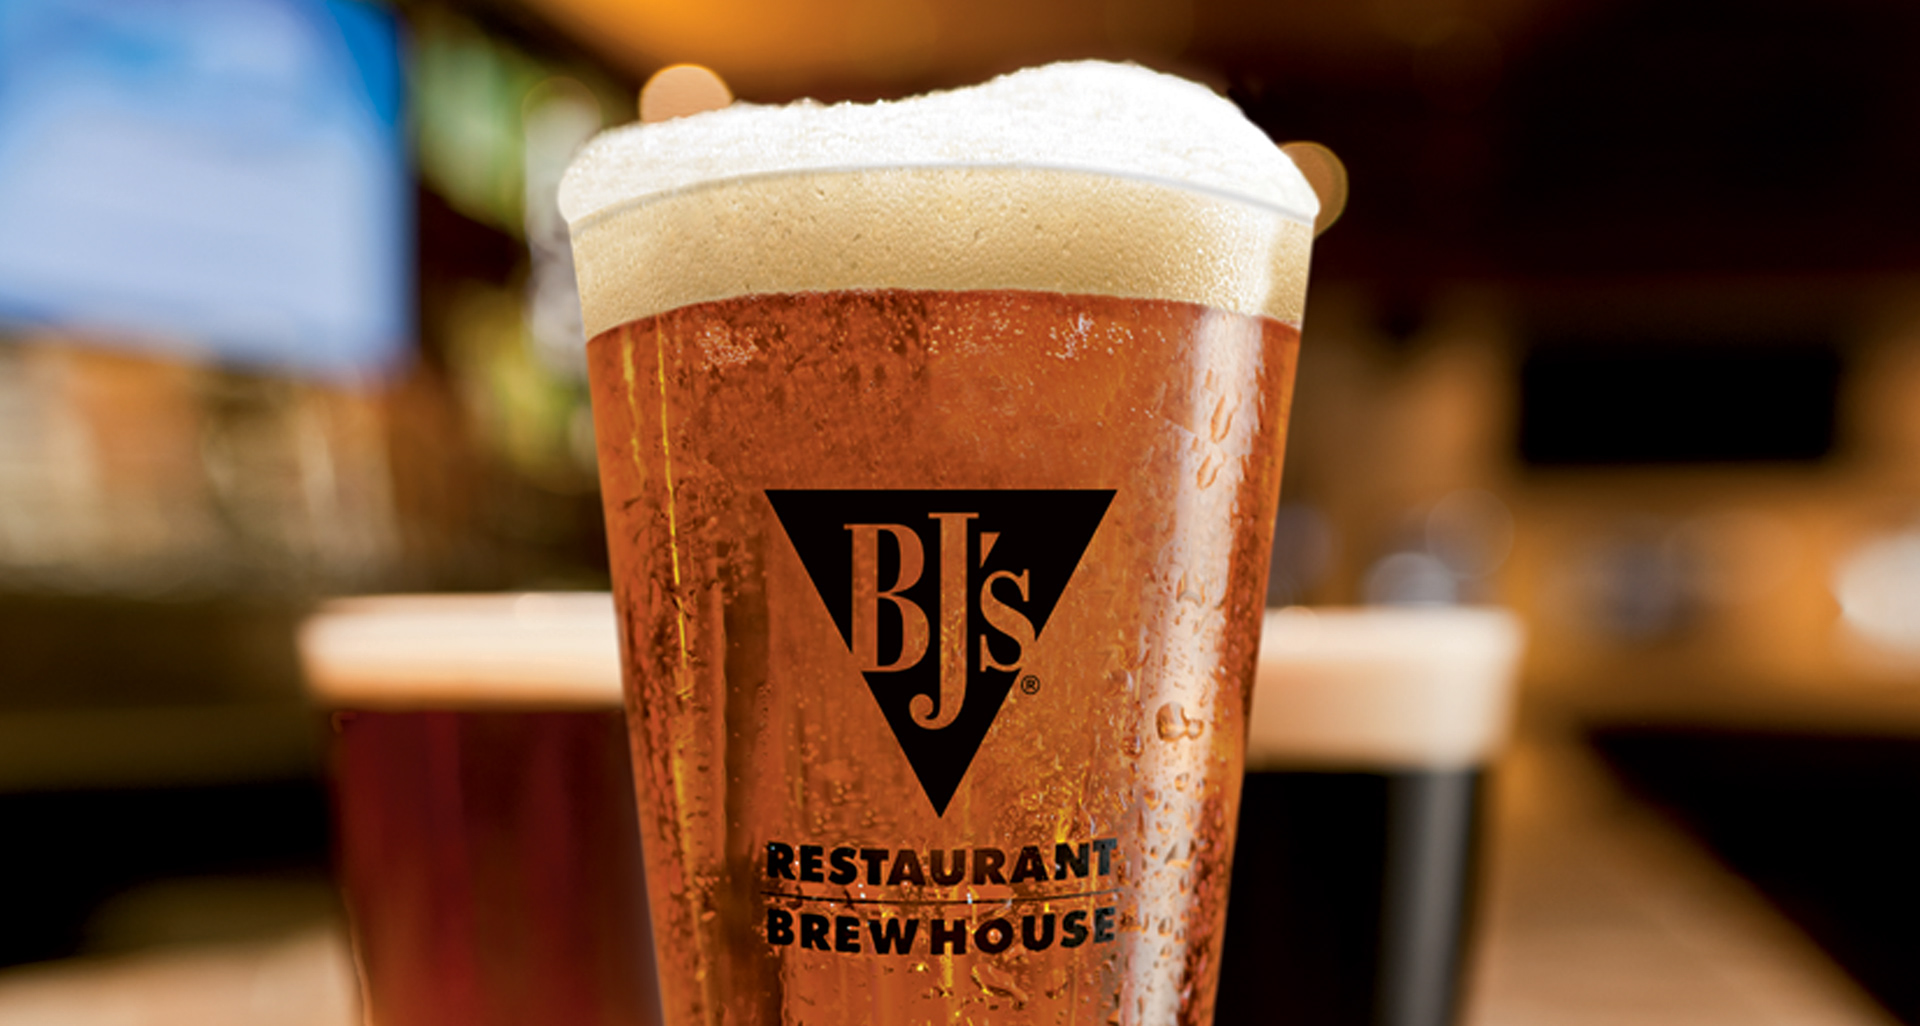 Bj 39 s brewhouse design bj 39 s linden nj bj 39 s burgers bj for Bj custom designs